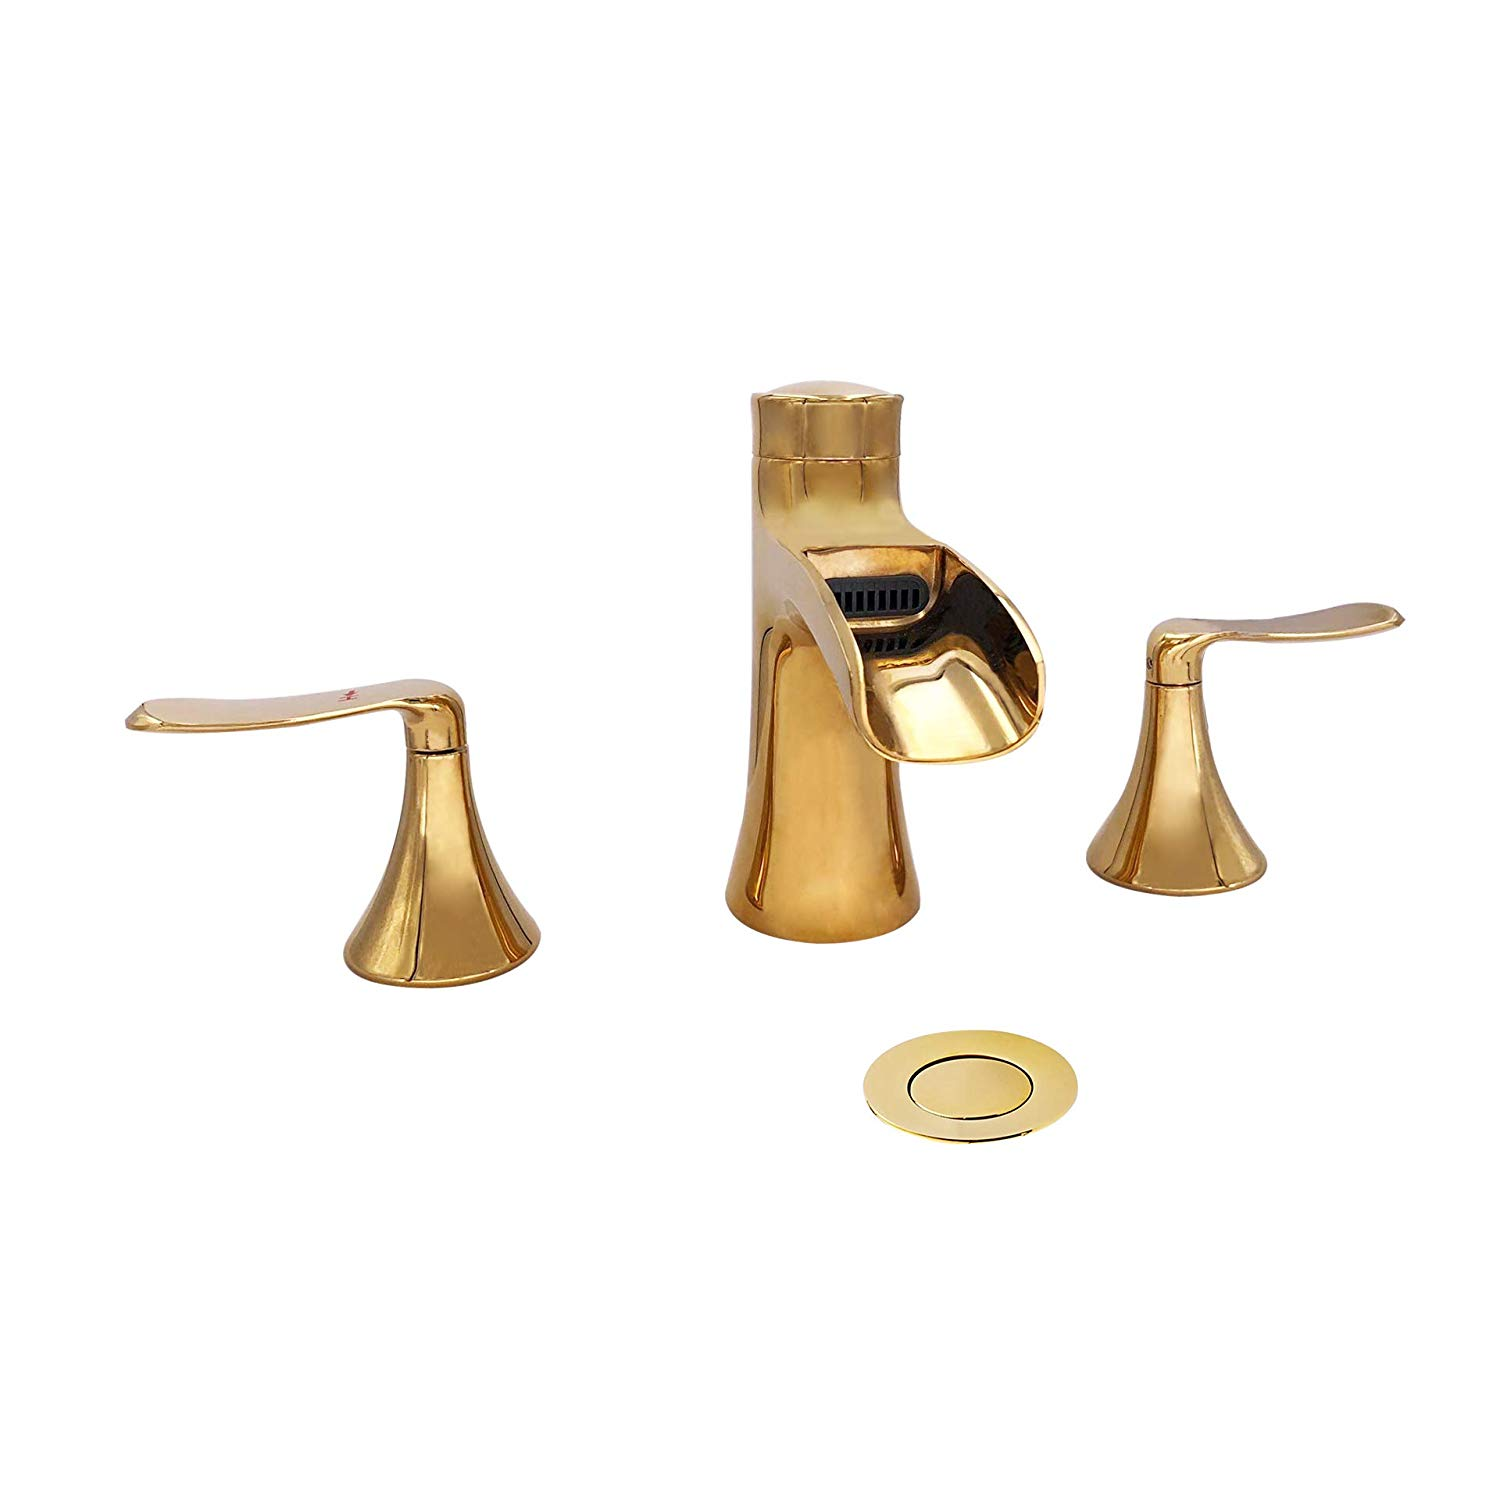 Wovier W 8416 G Widespread Waterfall Bathroom Sink Faucet, Gold Two Handle  Three Hole